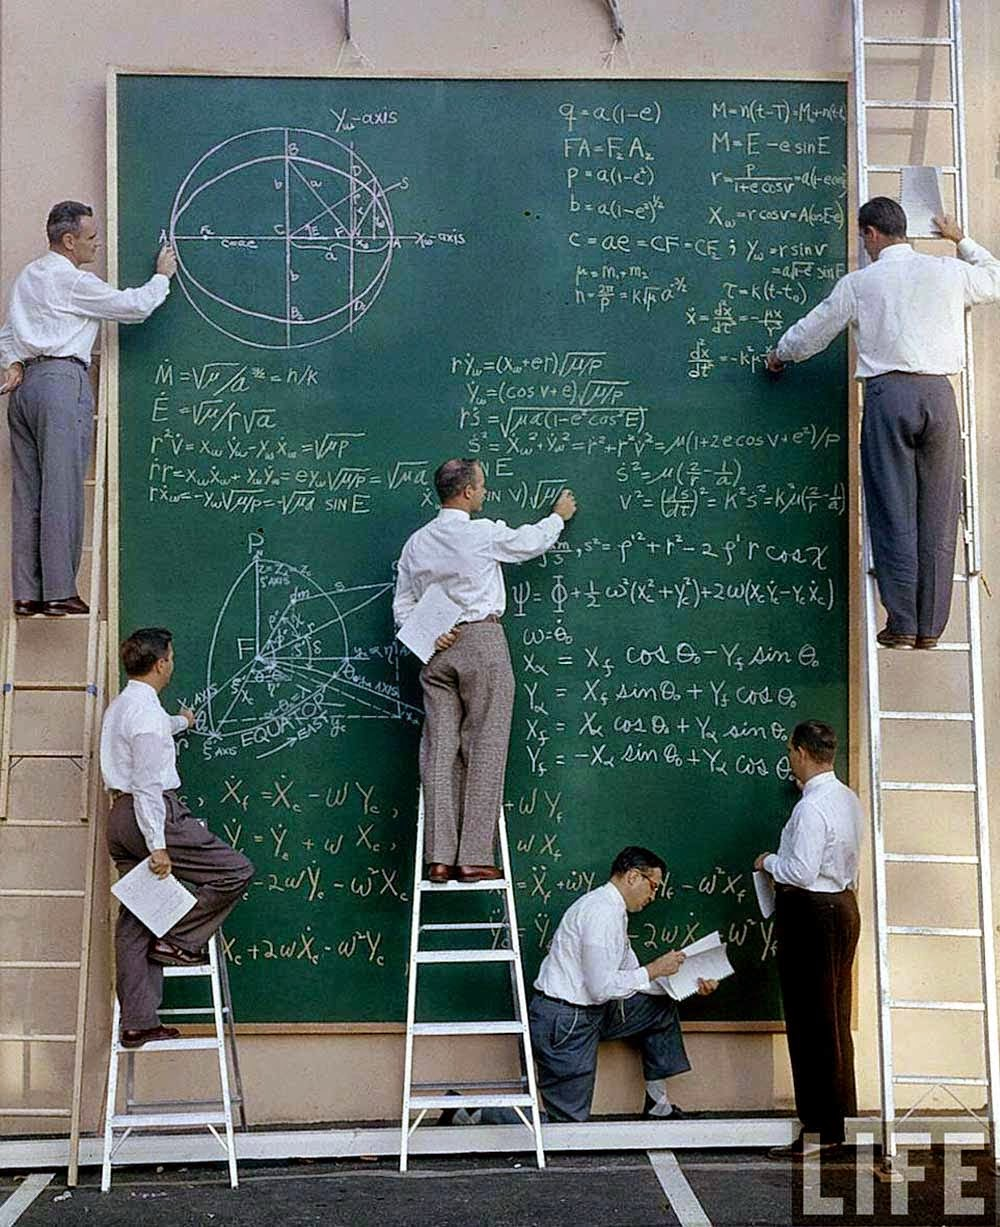 NASA Before Powerpoint: Pictures of Scientists With Their ...